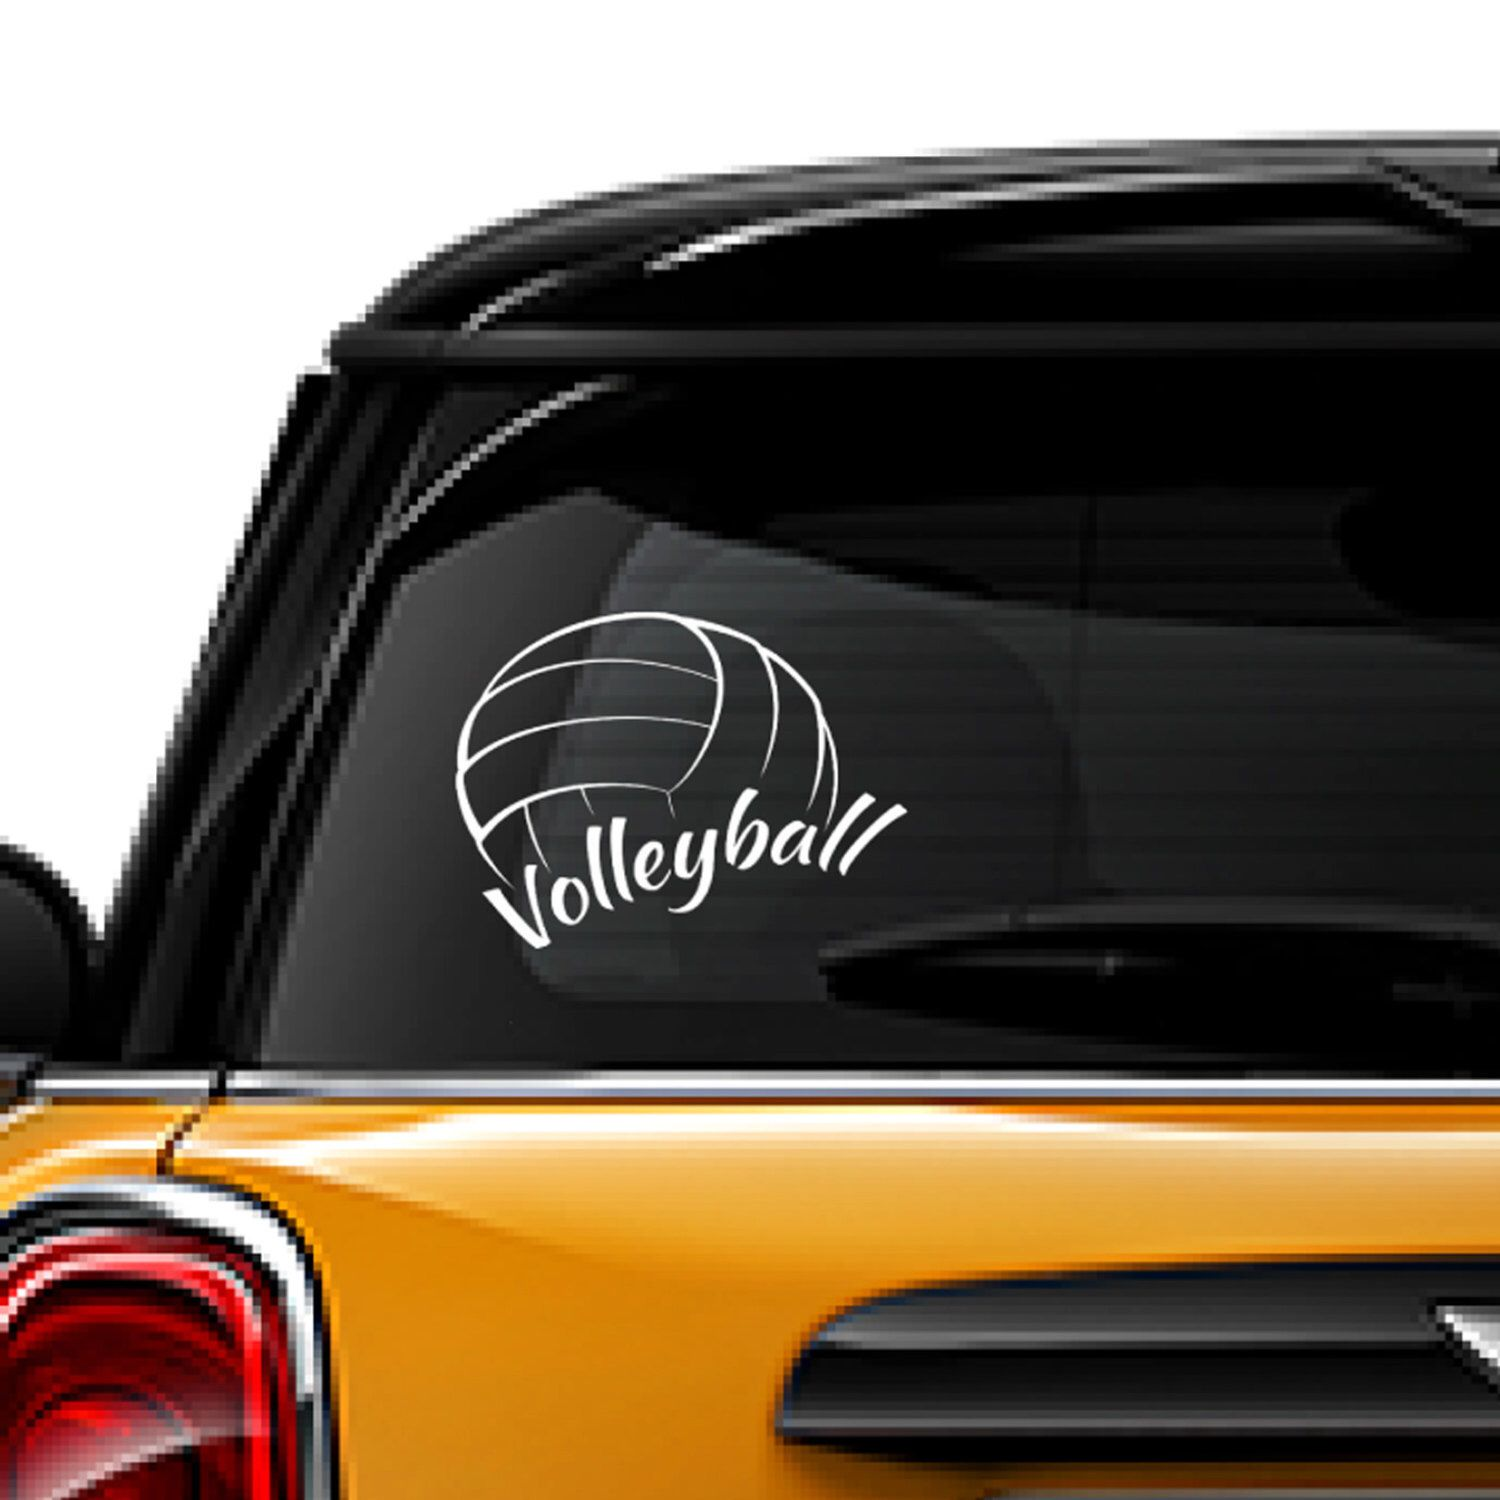 Volleyball Decal Sports Decal Window Sticker Free Shipping Sticker Decal White Vinyl Decal Laptop Decal Home D Cat Decal Bear Decal Vinyl Decal Stickers [ 1500 x 1500 Pixel ]